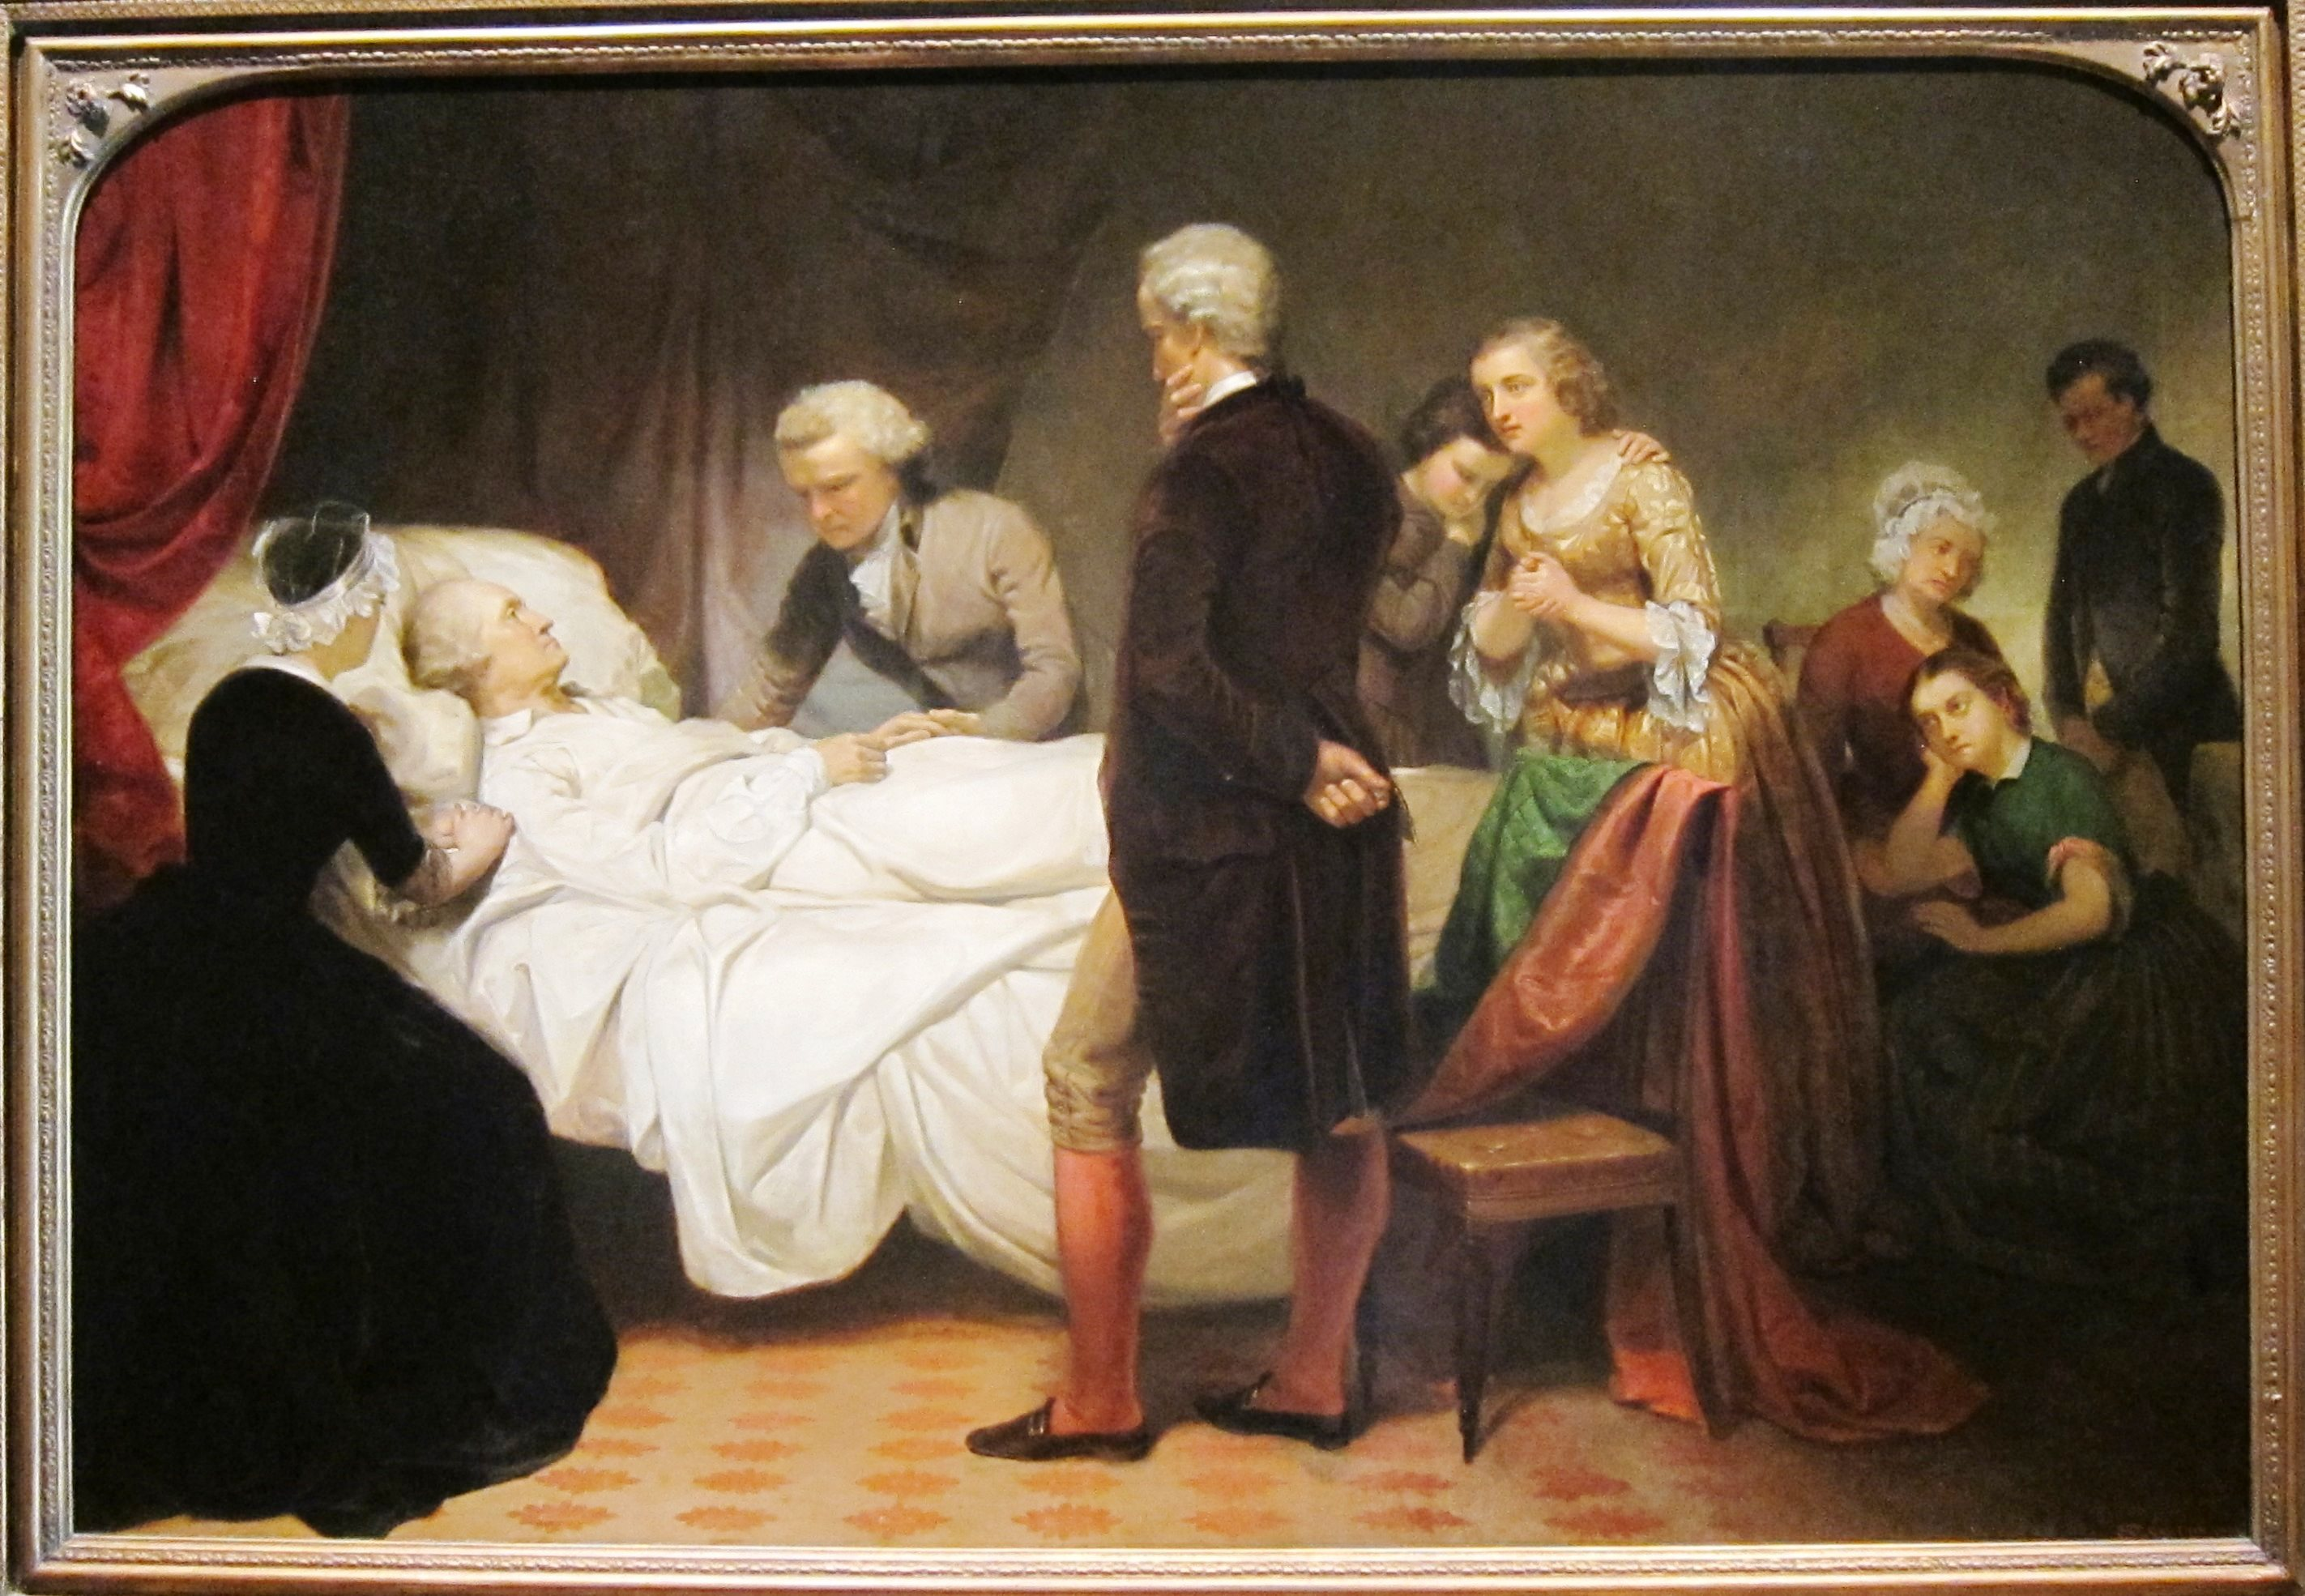 George Washington's Hard Death Shows the Limits of Medicine in His Time